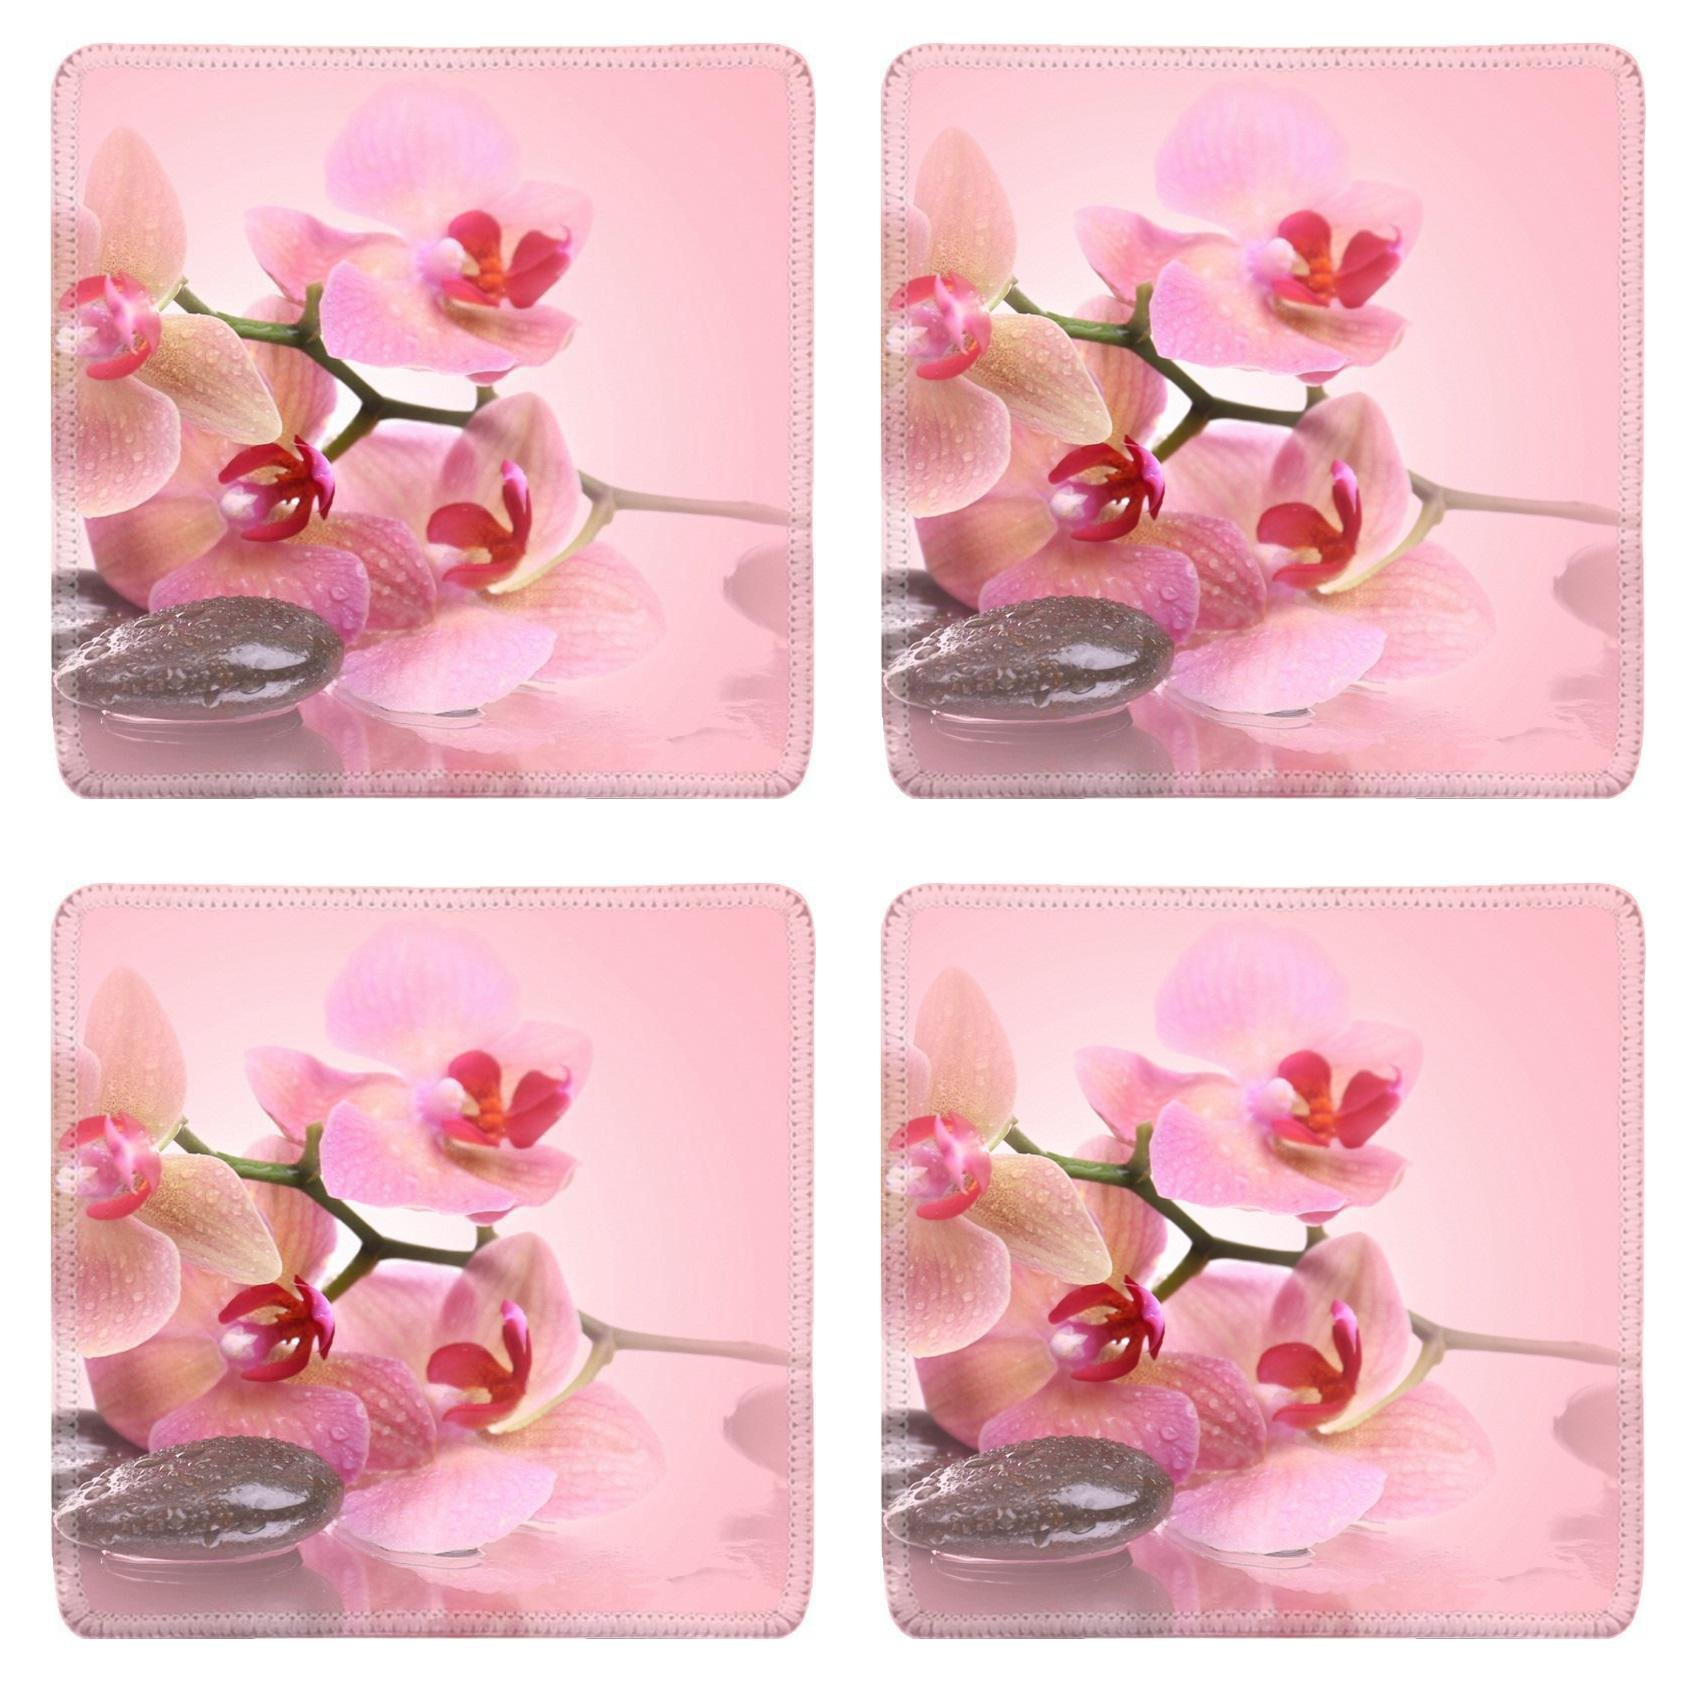 MSD Square Coasters Non-Slip Natural Rubber Desk Coasters design 36276854 Beautiful blooming orchid with spa stones on pink background